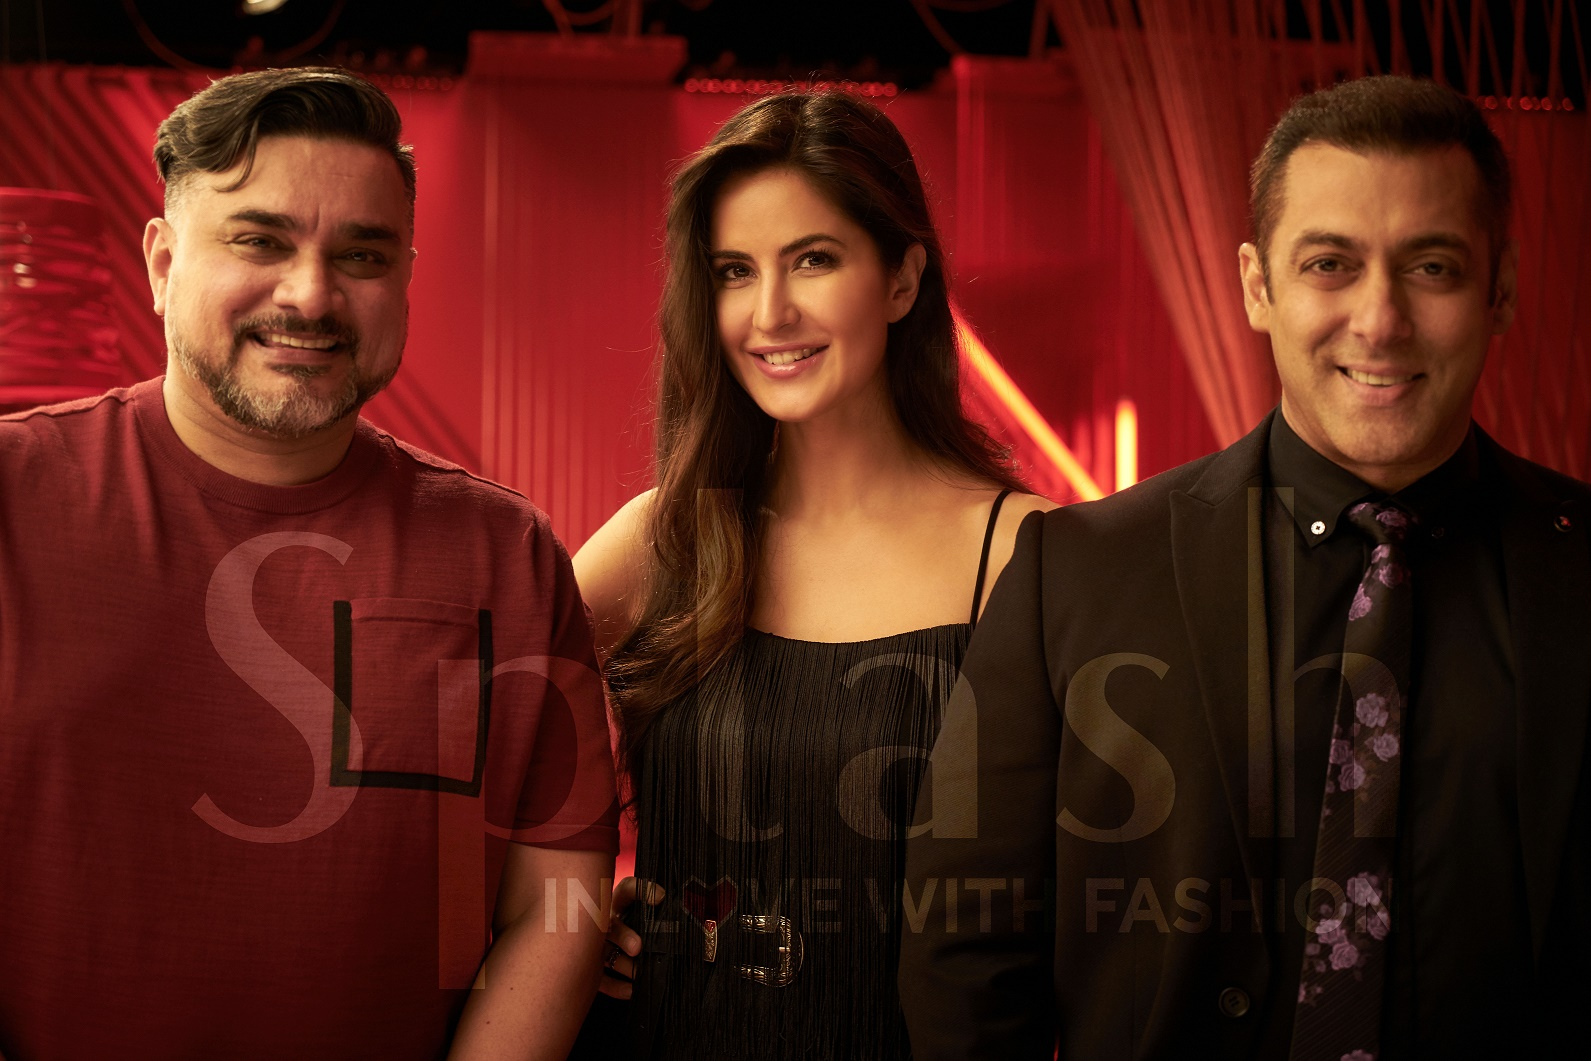 Splash signs Superstars Salman Khan and Katrina Kaif as brand ambassadors